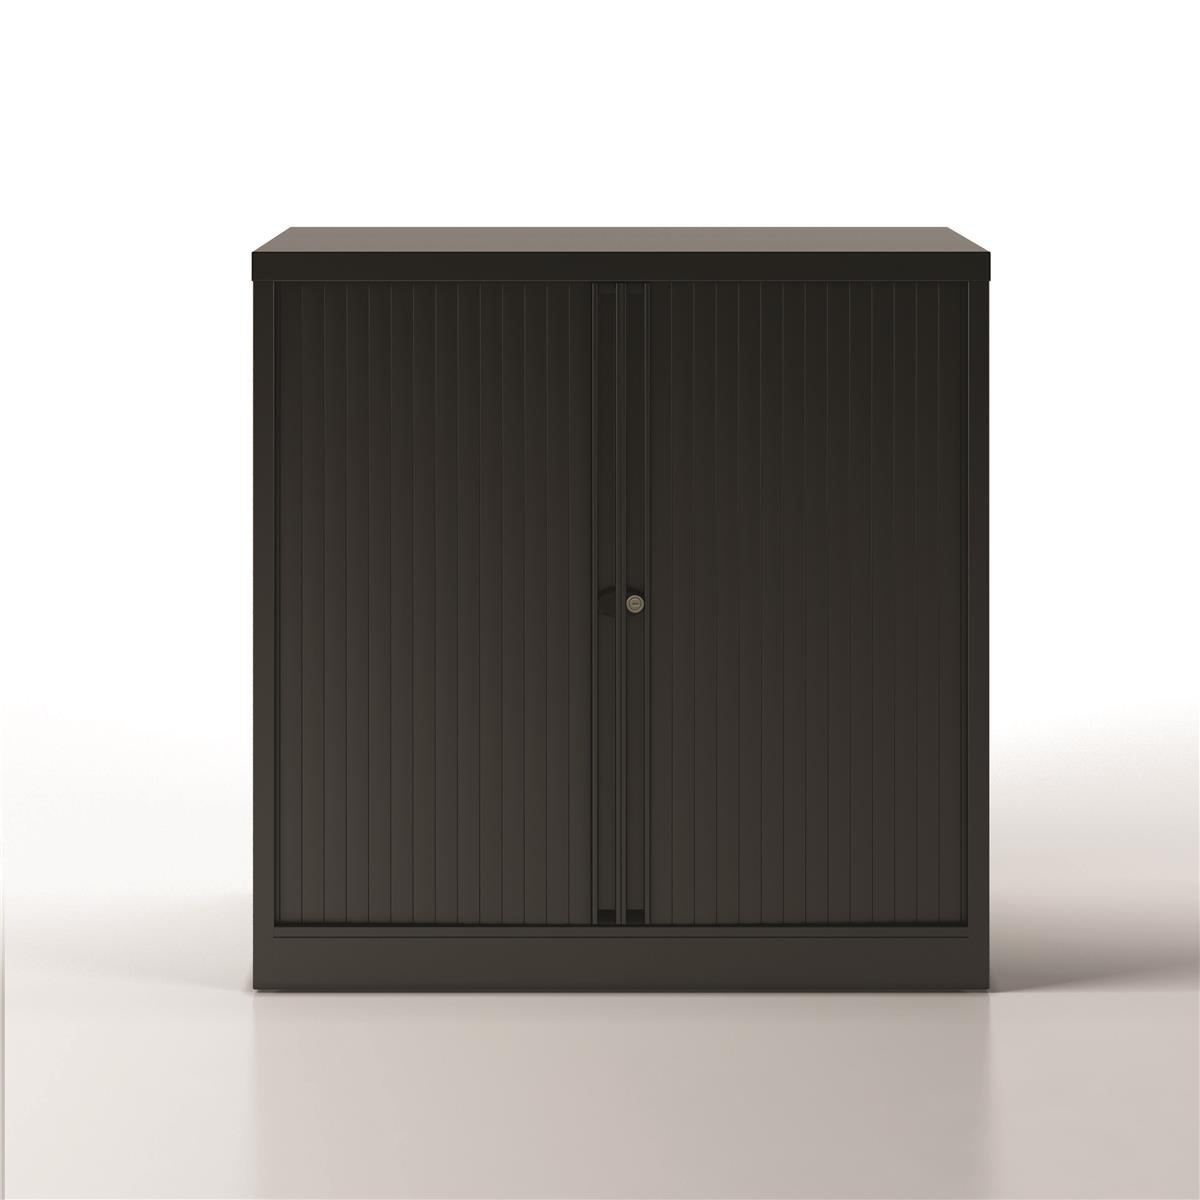 Trexus by Bisley Side Opening Tambour Door Cupboard 1000x470x1000-1015mm Black/Black Ref YETB1010.5-av1